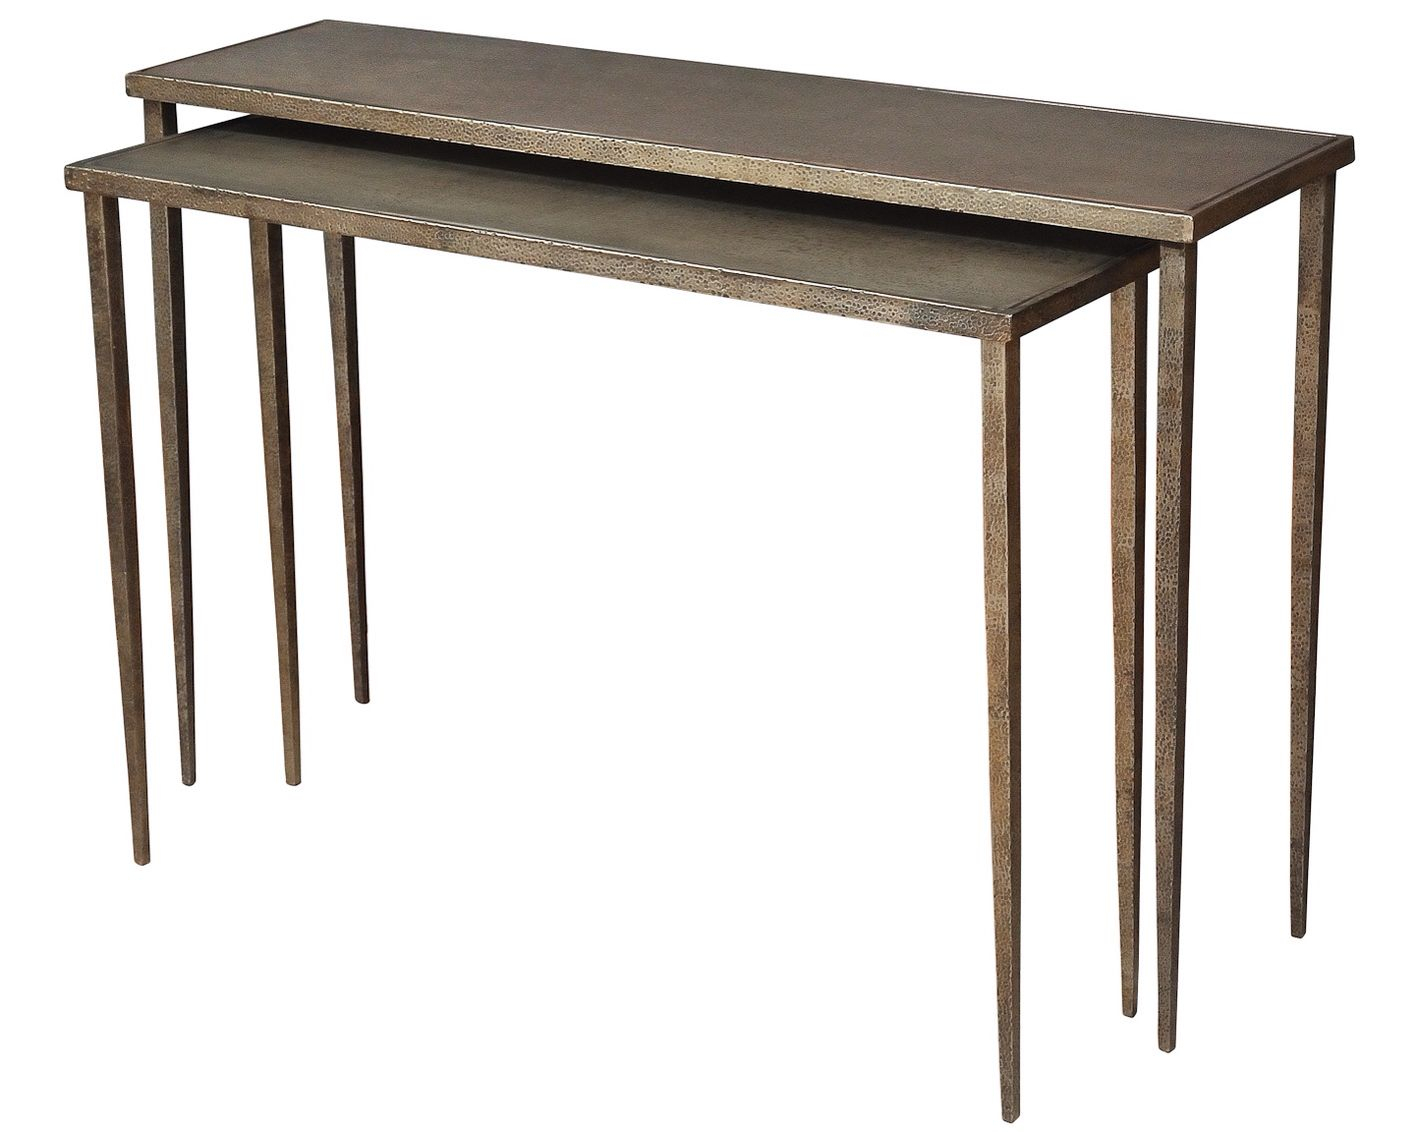 Hammered Sheet Metal Console Tables | My Designs | Pinterest In Parsons White Marble Top & Stainless Steel Base 48x16 Console Tables (View 10 of 30)